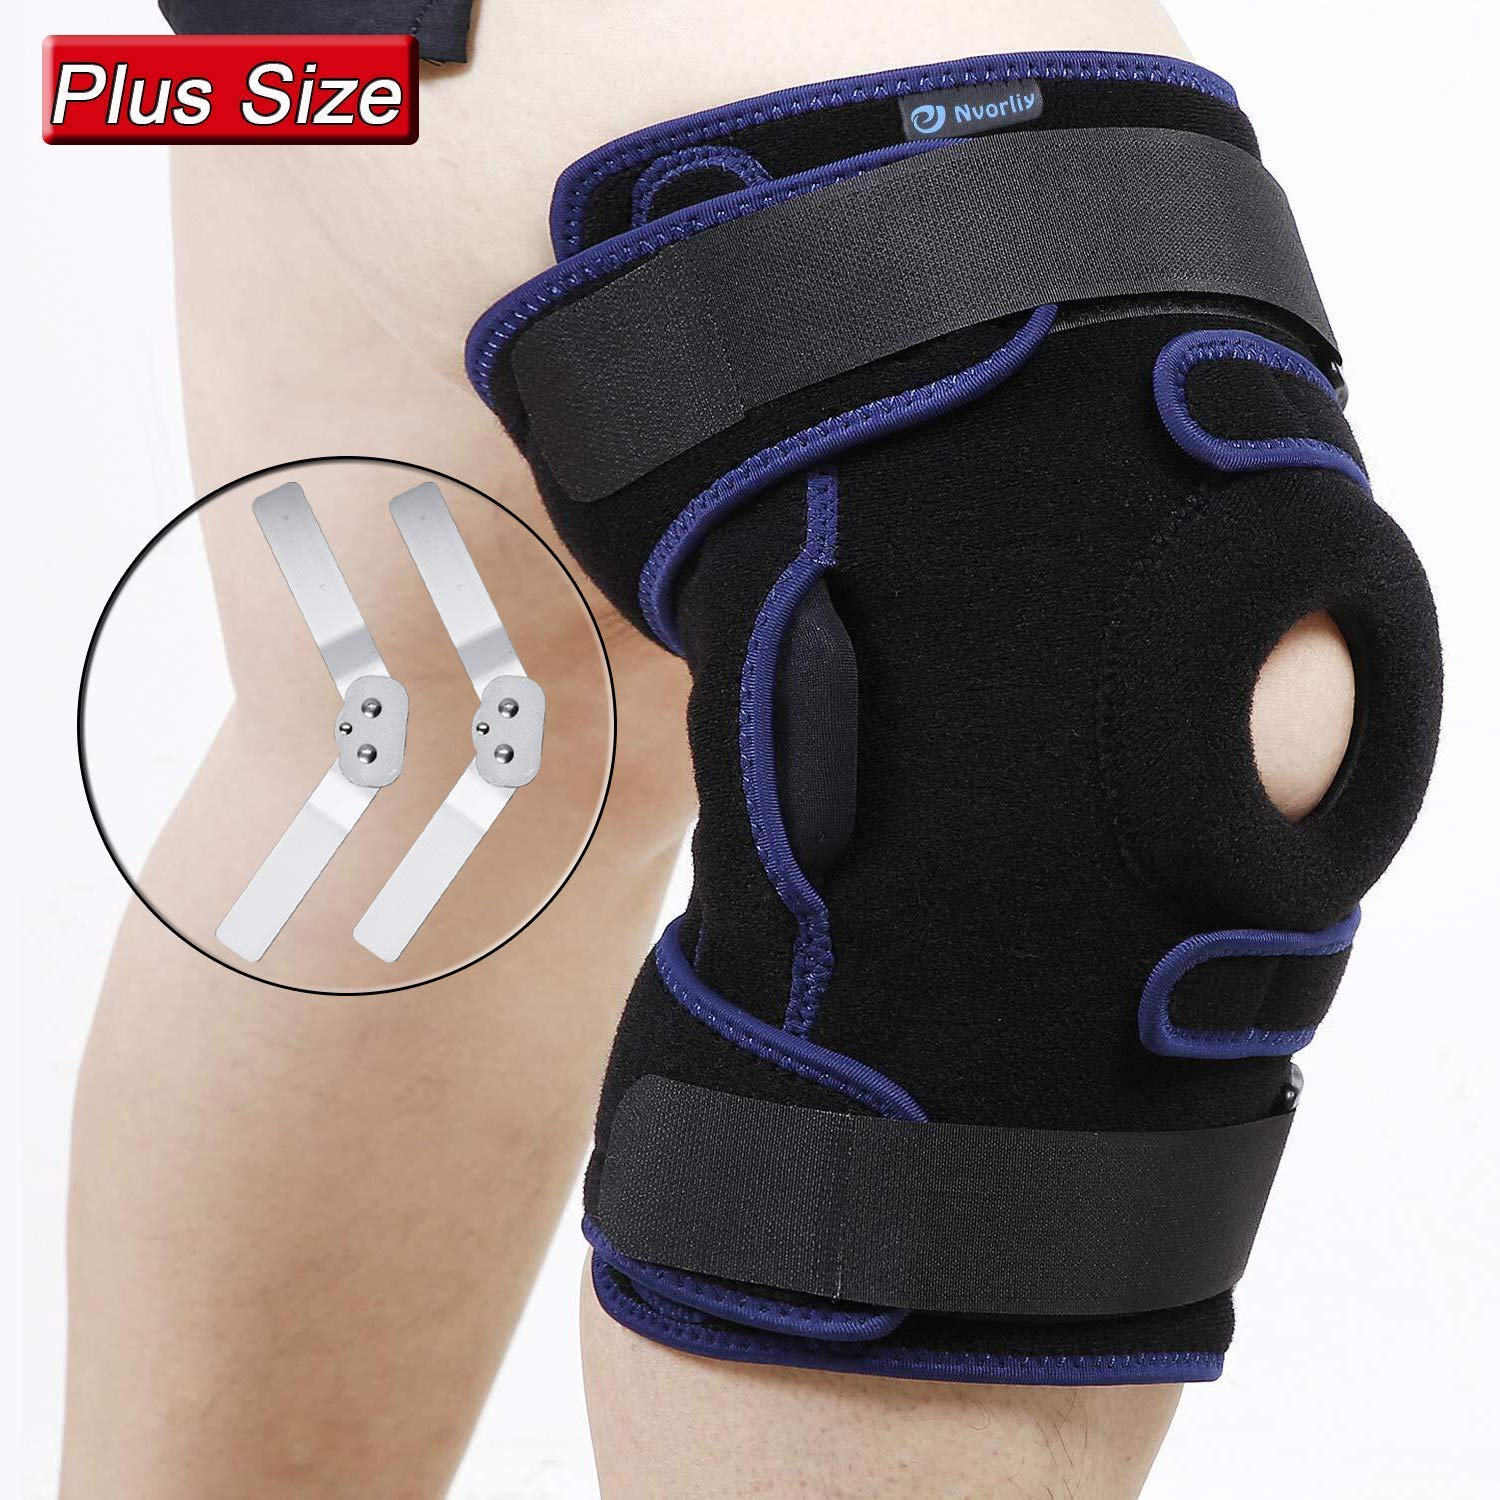 Nvorliy Plus Size Hinged Knee Brace Dual Strap Patellar Stabilization Design & High-Level Support For Arthritis, ACL, LCL, MCL, Meniscus Tear, TDislocation, Post-Surgery Recovery Fit Men & Women (3XL) by Nvorliy